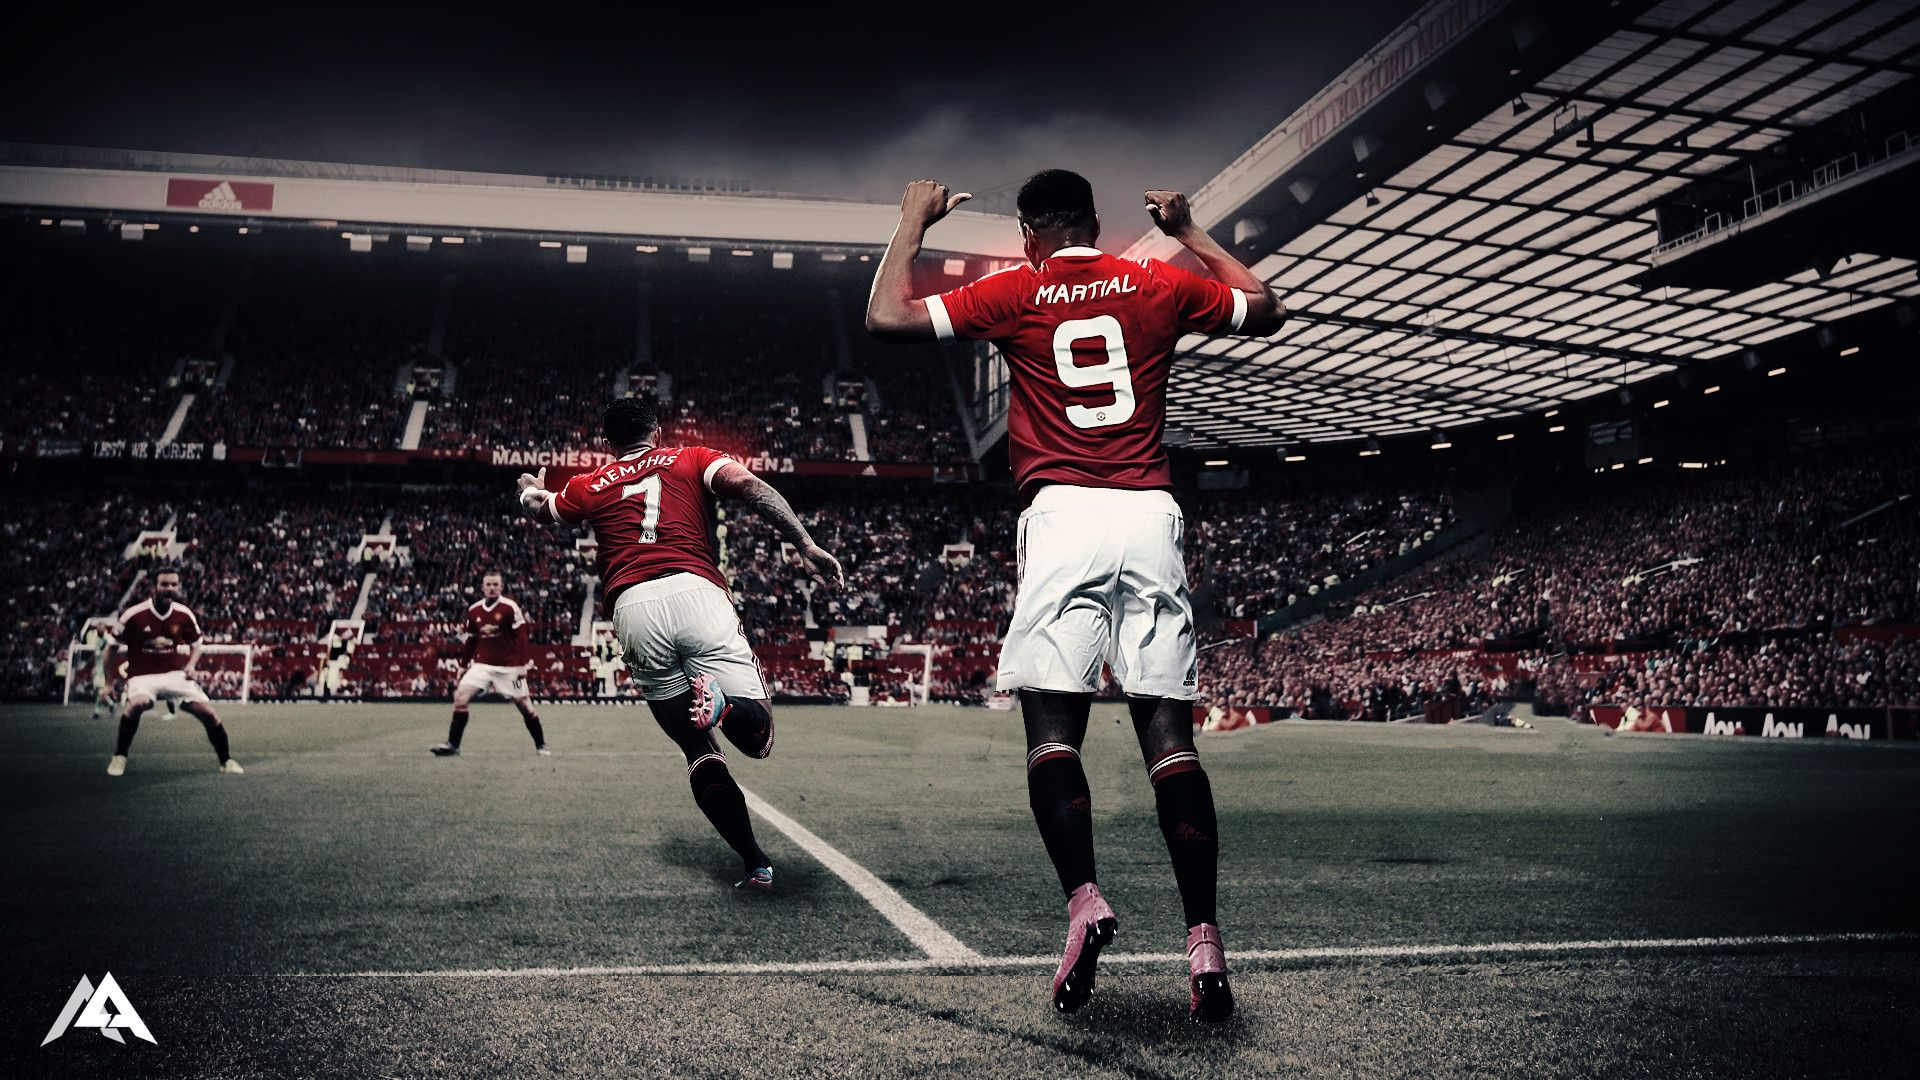 1920x1080 B Manchester United B Vs Southampton Ticket Travel Guide Manchester United Desktop Background Pictures Manchester